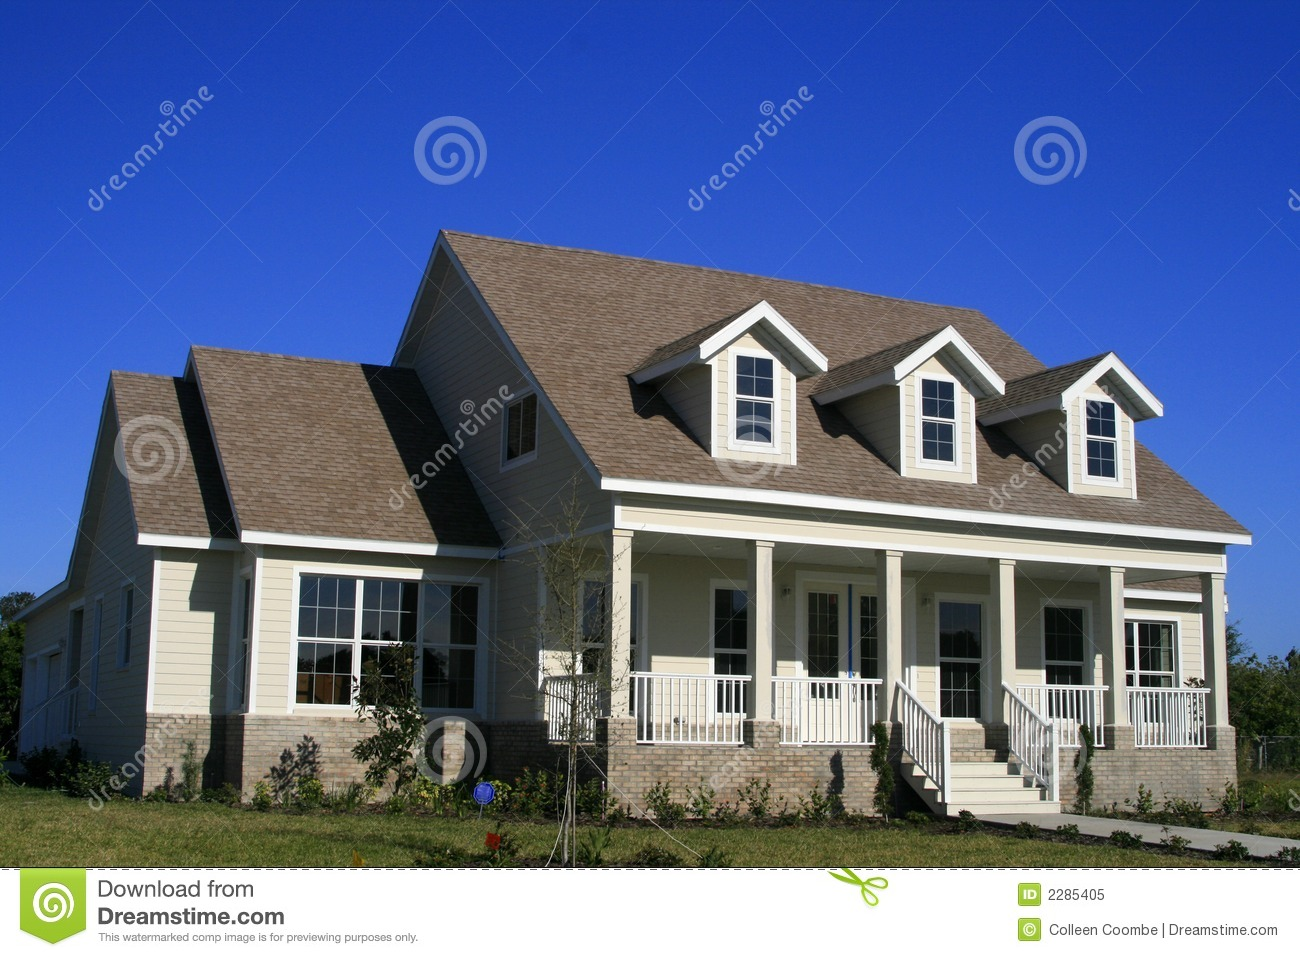 Type maison am ricain de pays image stock image 2285405 for Type maison